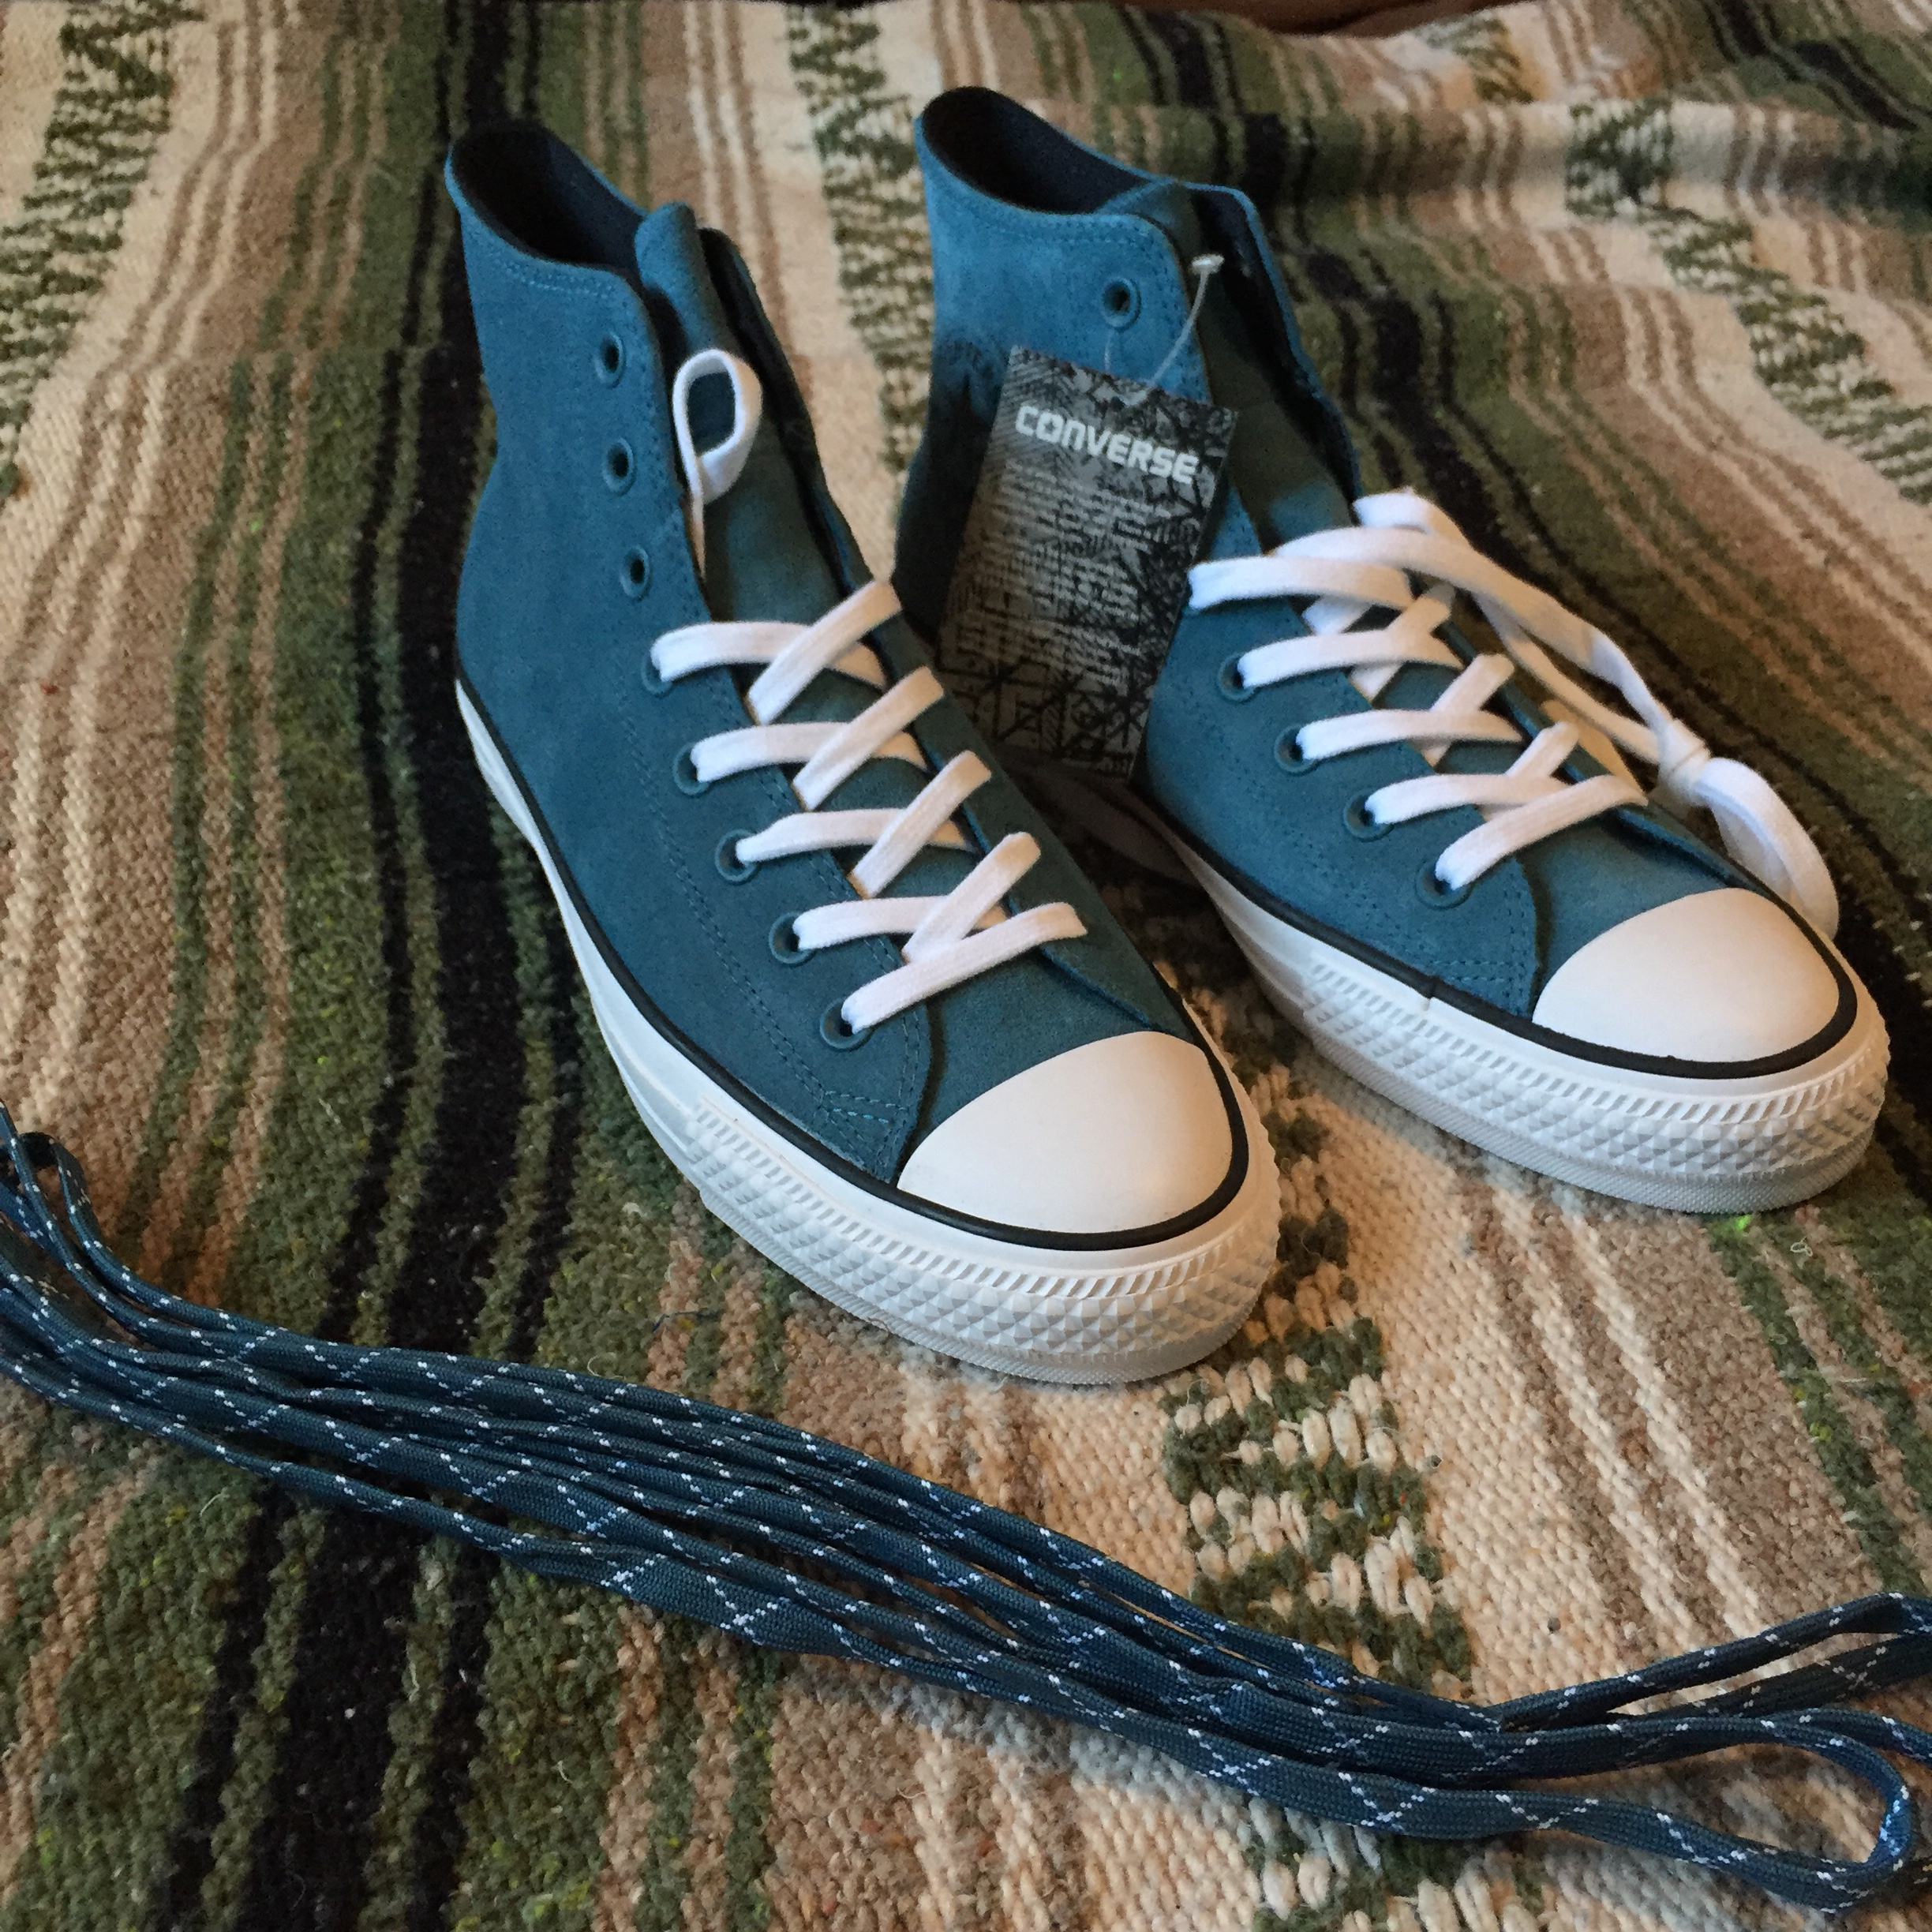 56e099b04363 Converse Cons CTAS PRO Hi Awesome Teal color to these skate - Depop